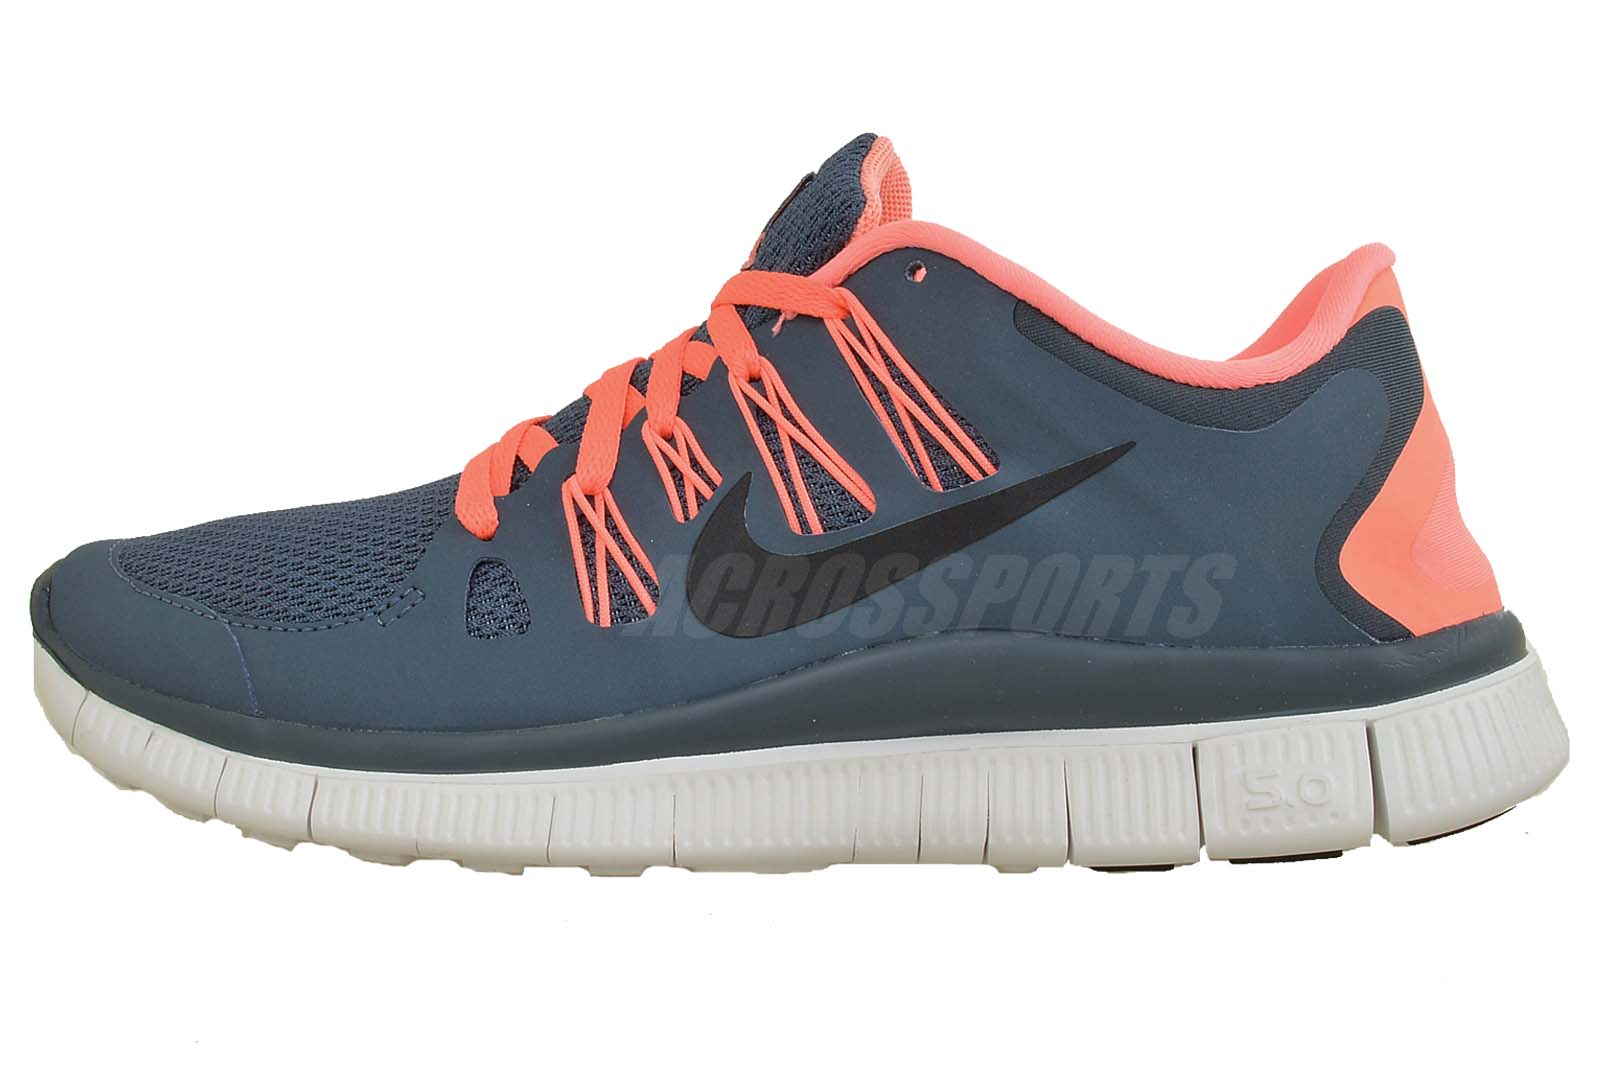 nike wmns free 5 0 plus navy pink 2013 new run womens running shoes 580591 446 ebay. Black Bedroom Furniture Sets. Home Design Ideas